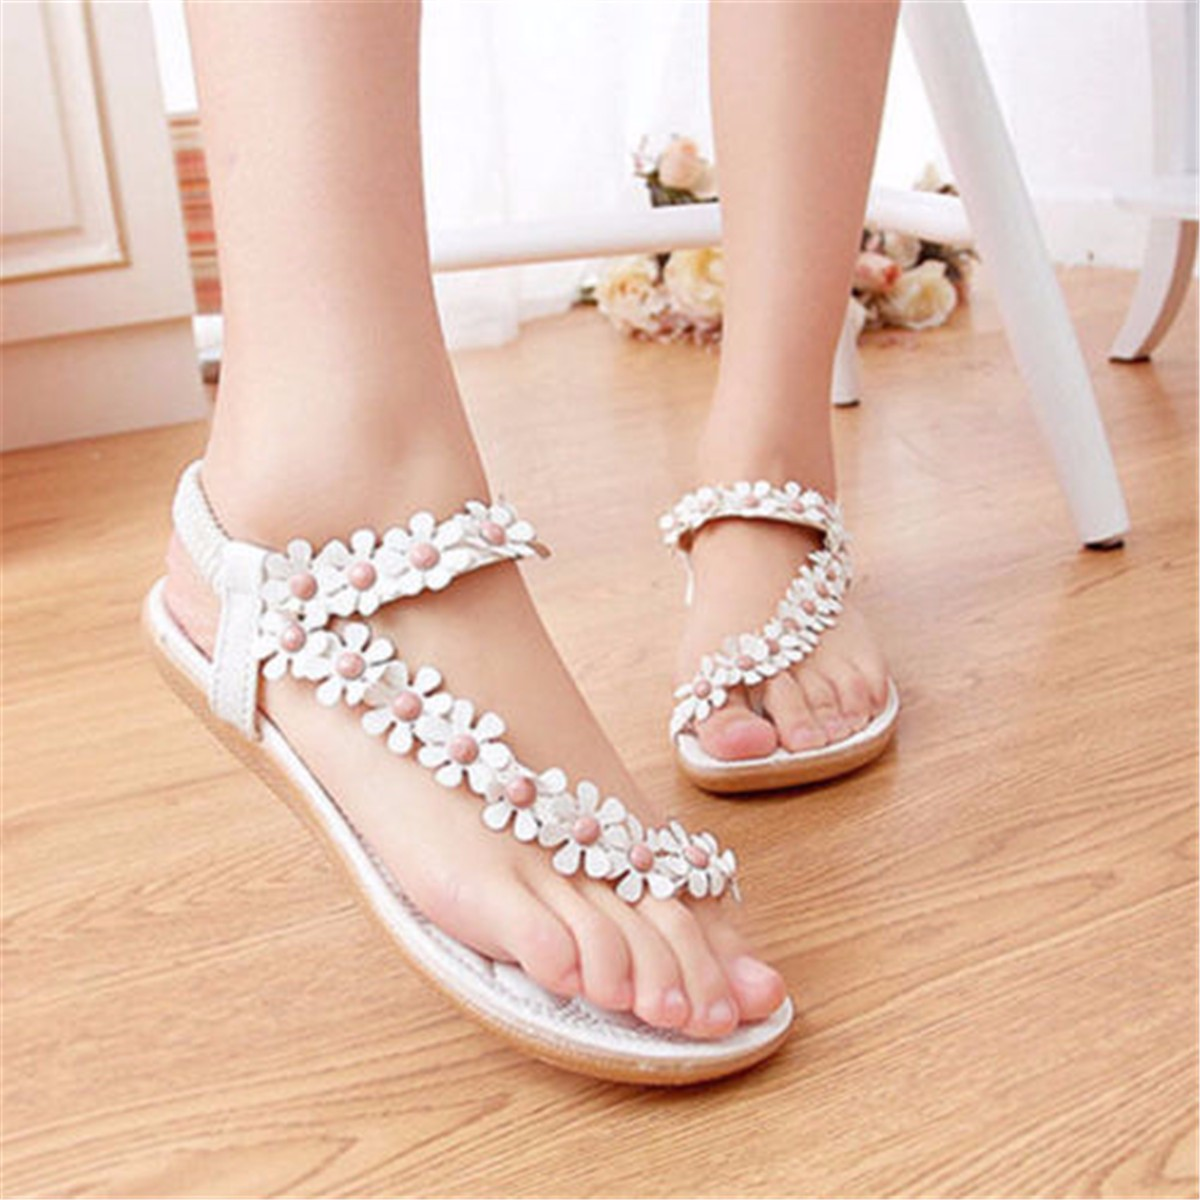 damenschuhe sandalen sandaletten riemchen flach strand sommer schuhe mit blumen ebay. Black Bedroom Furniture Sets. Home Design Ideas